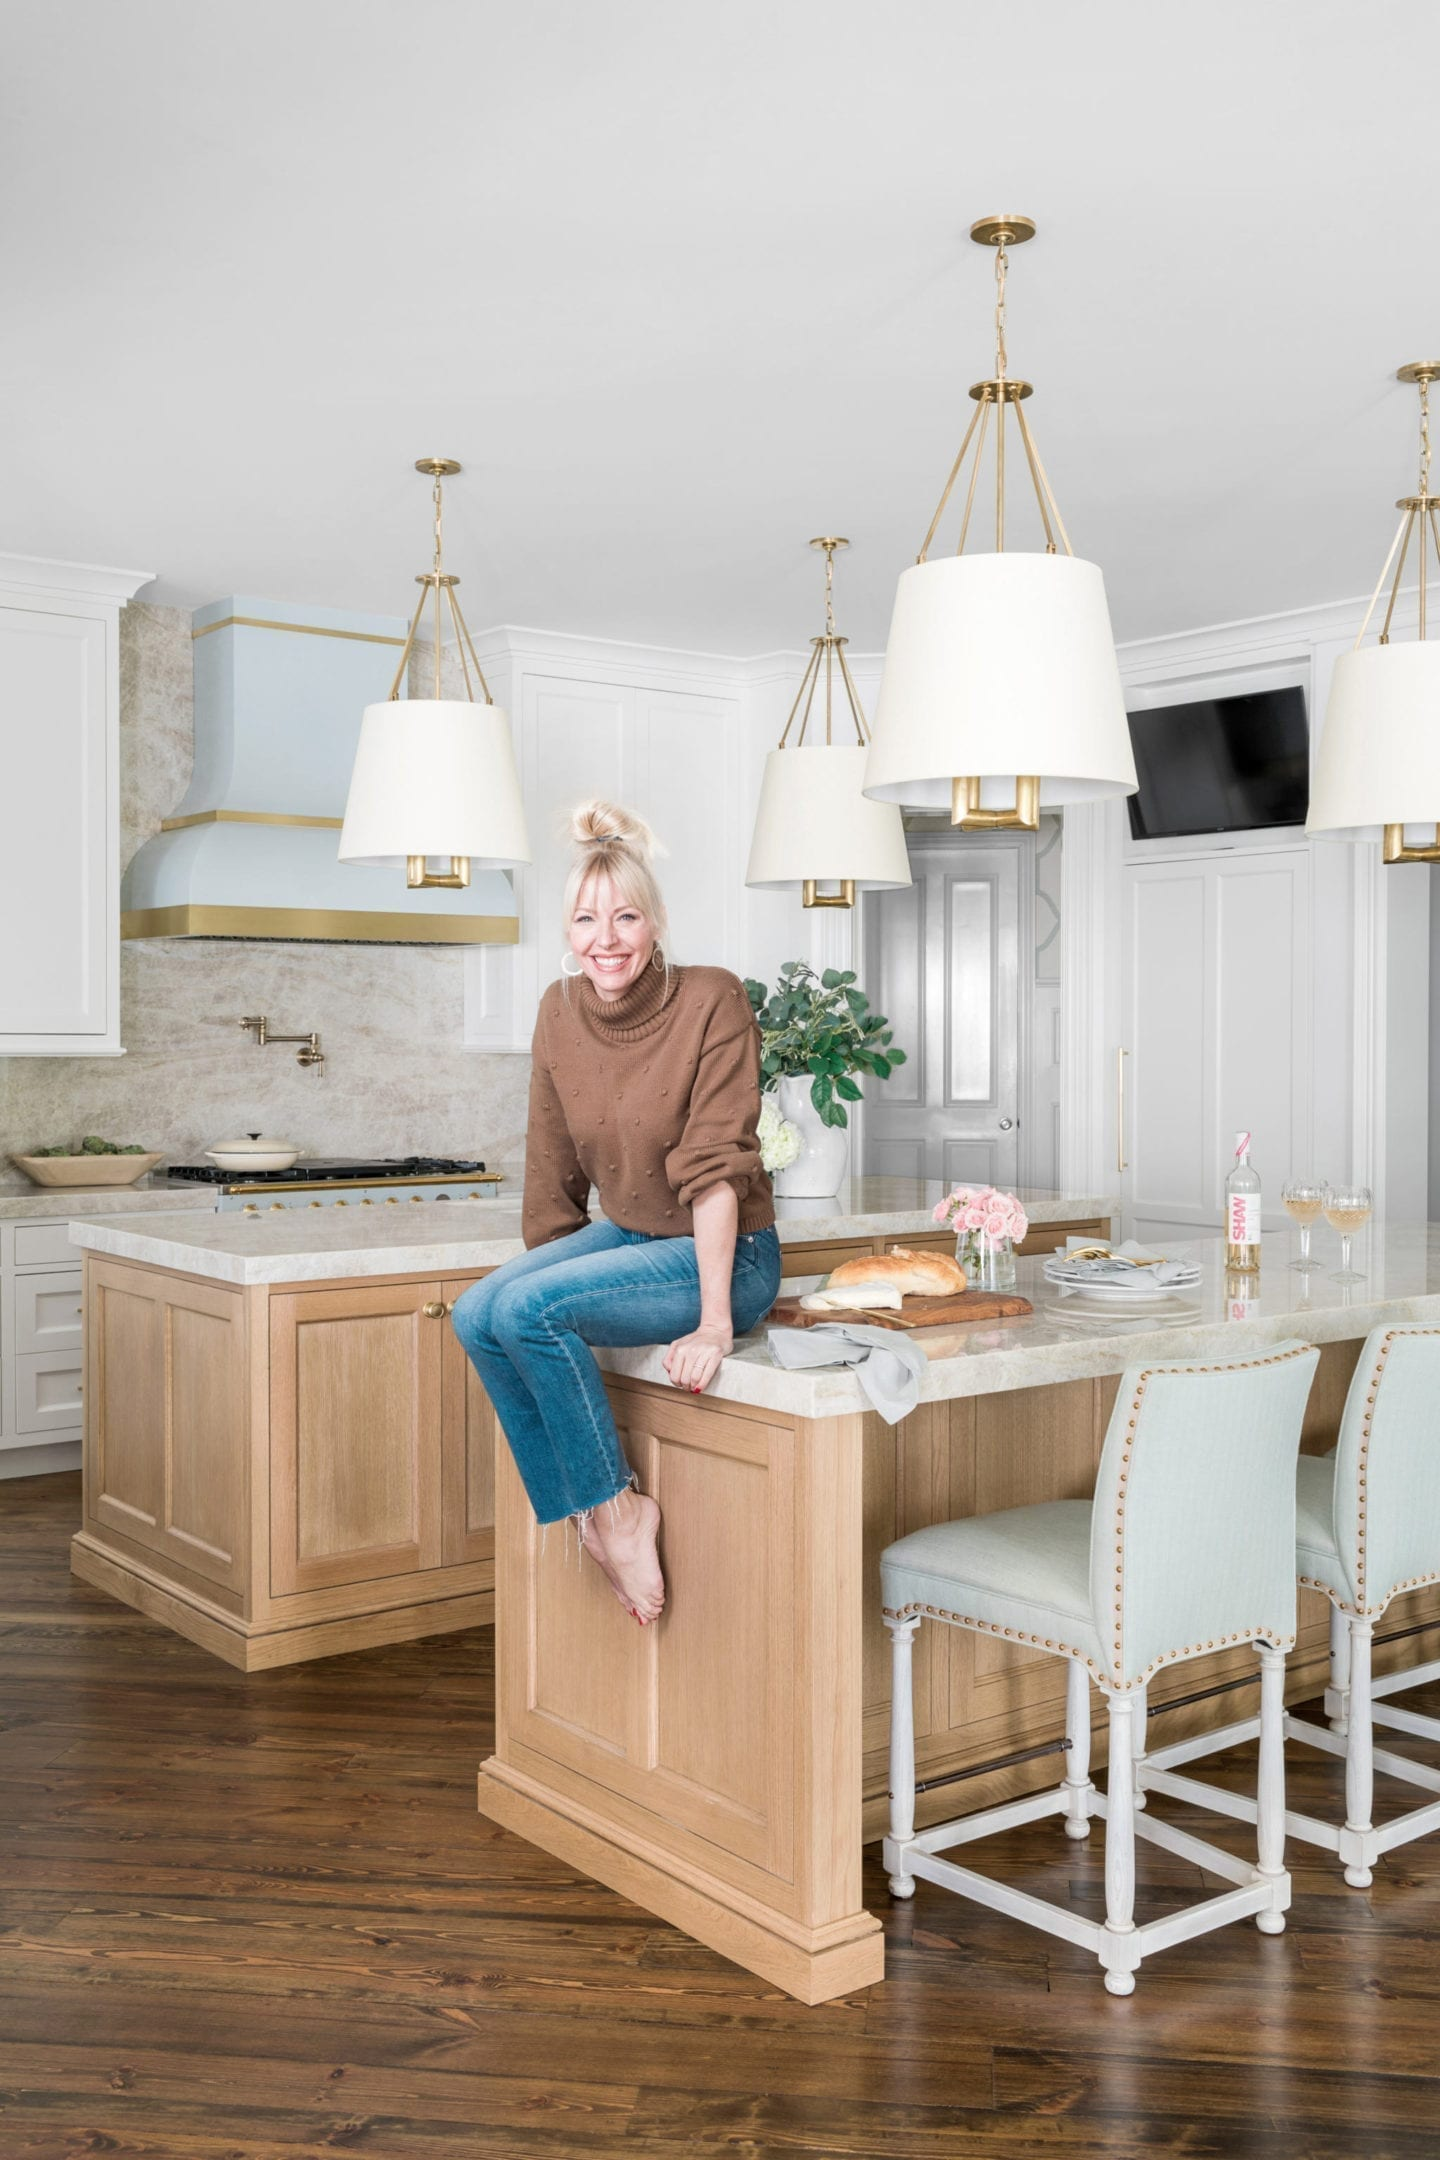 Atlanta home blogger BlueGrayGal, Kelly Page, in her newly remodeled kitchen with blue, wood and taupe decor.